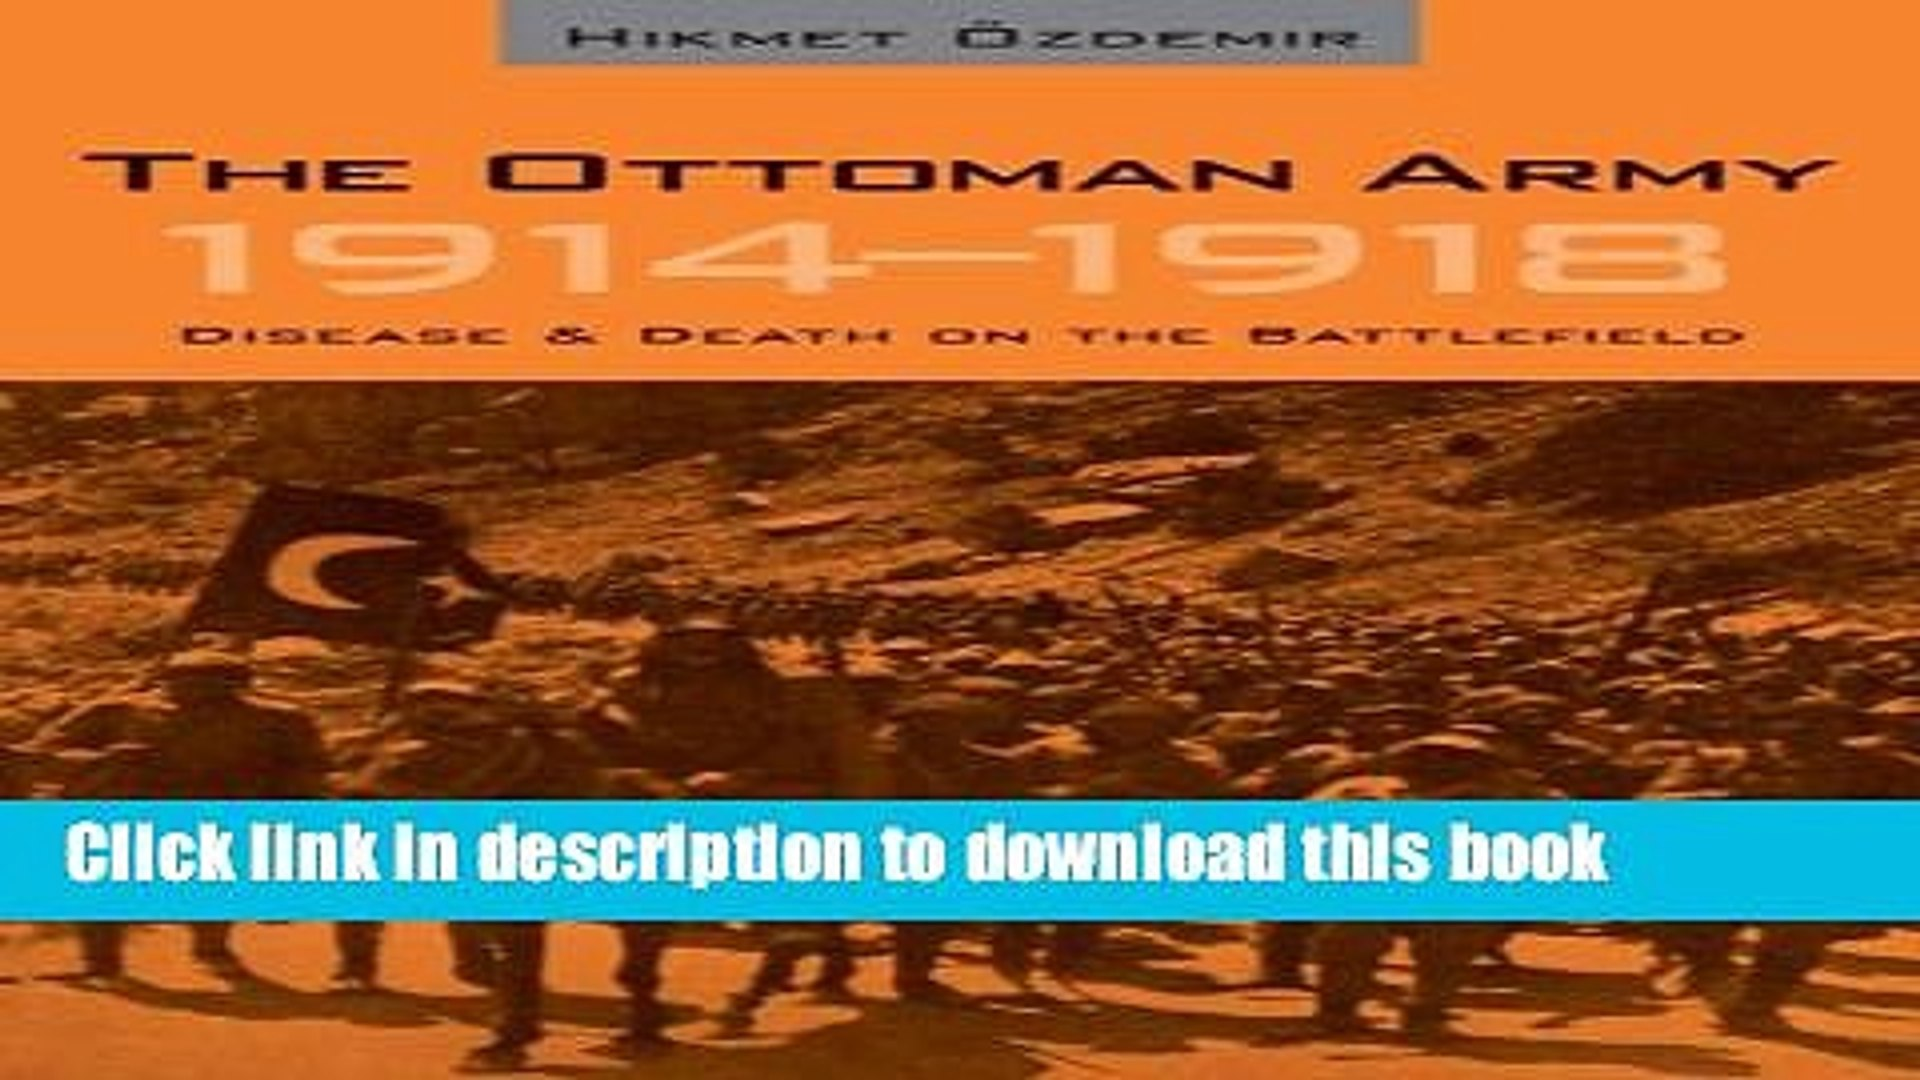 Read The Ottoman Army 1914 - 1918: Disease and Death on the Battlefield (Utah Series in Turkish